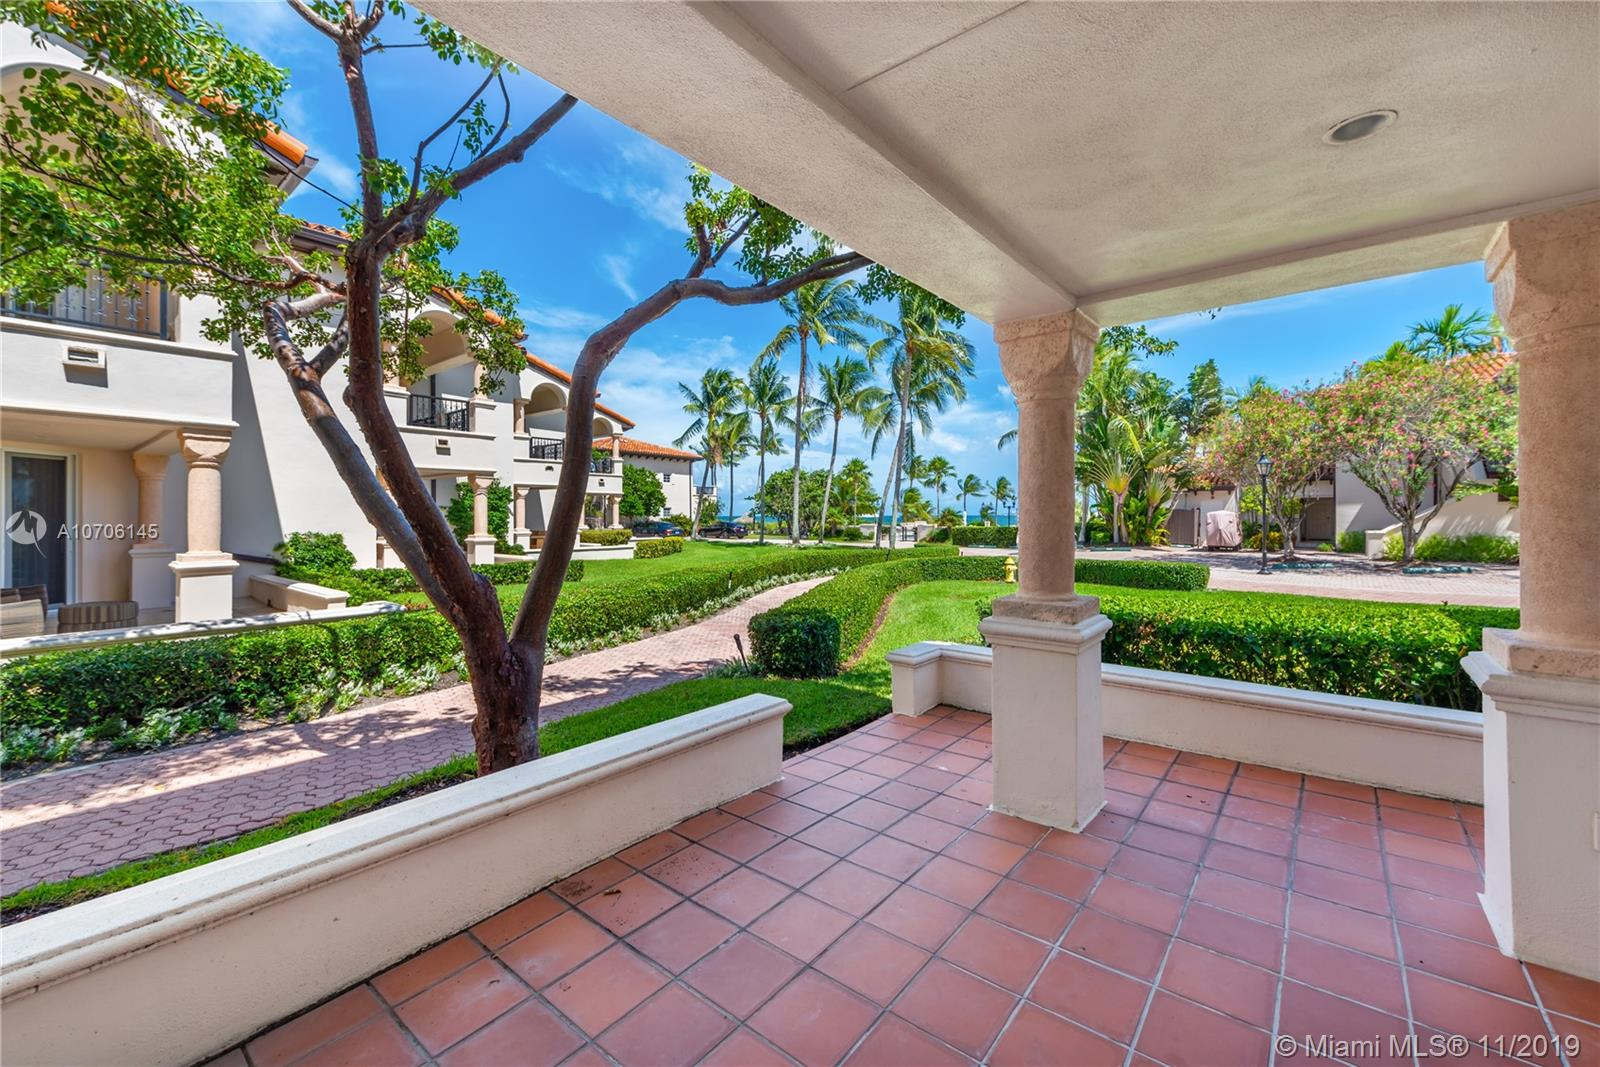 15511  Fisher Island Dr #15511 For Sale A10706145, FL